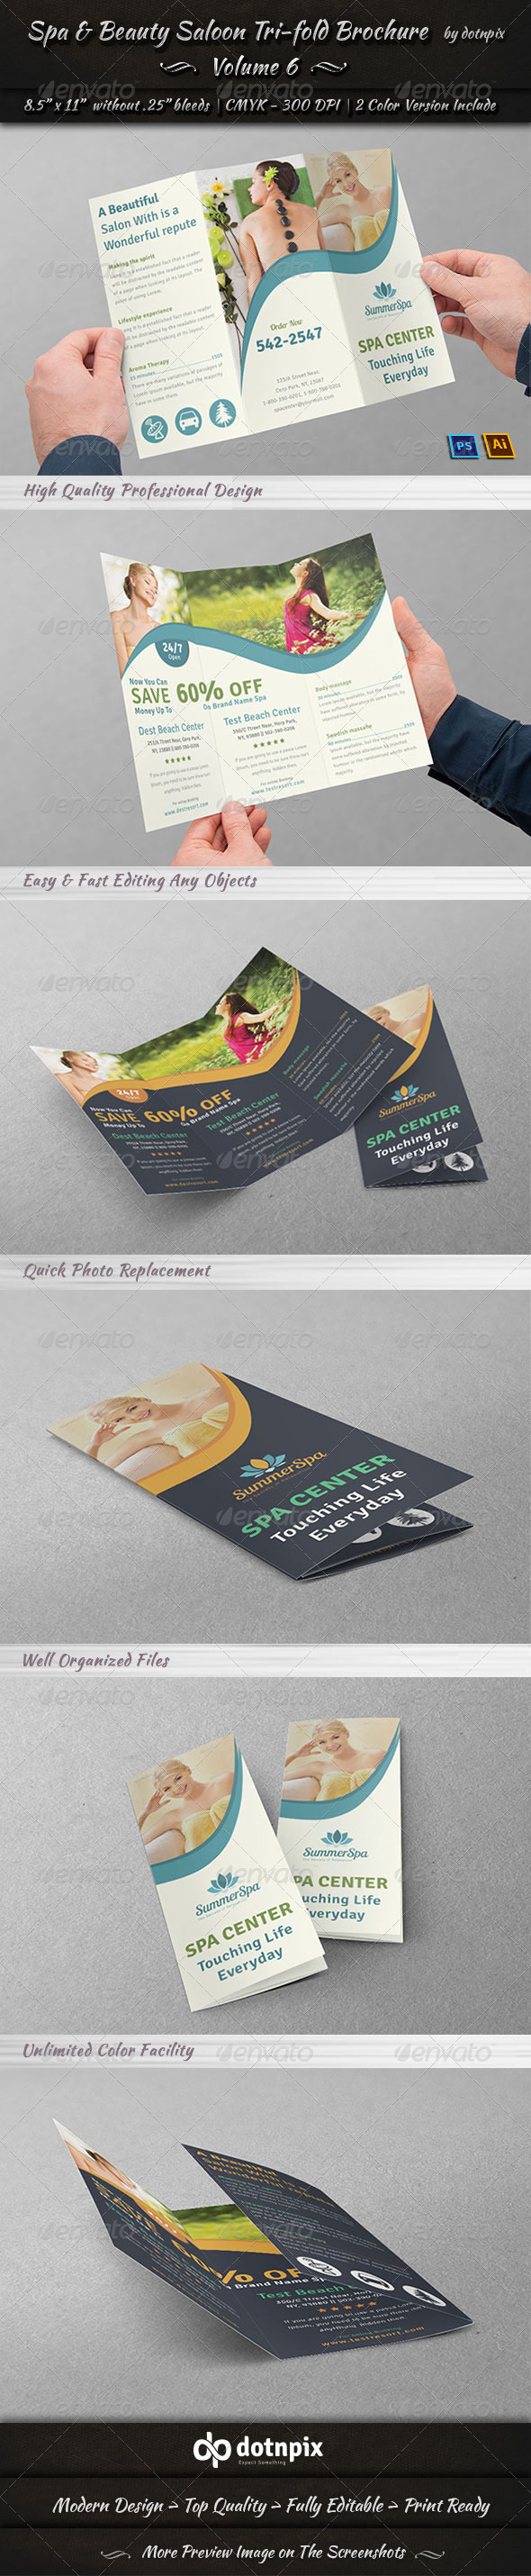 GraphicRiver Spa & Beauty Saloon Tri-fold Brochure Volume 6 7871625